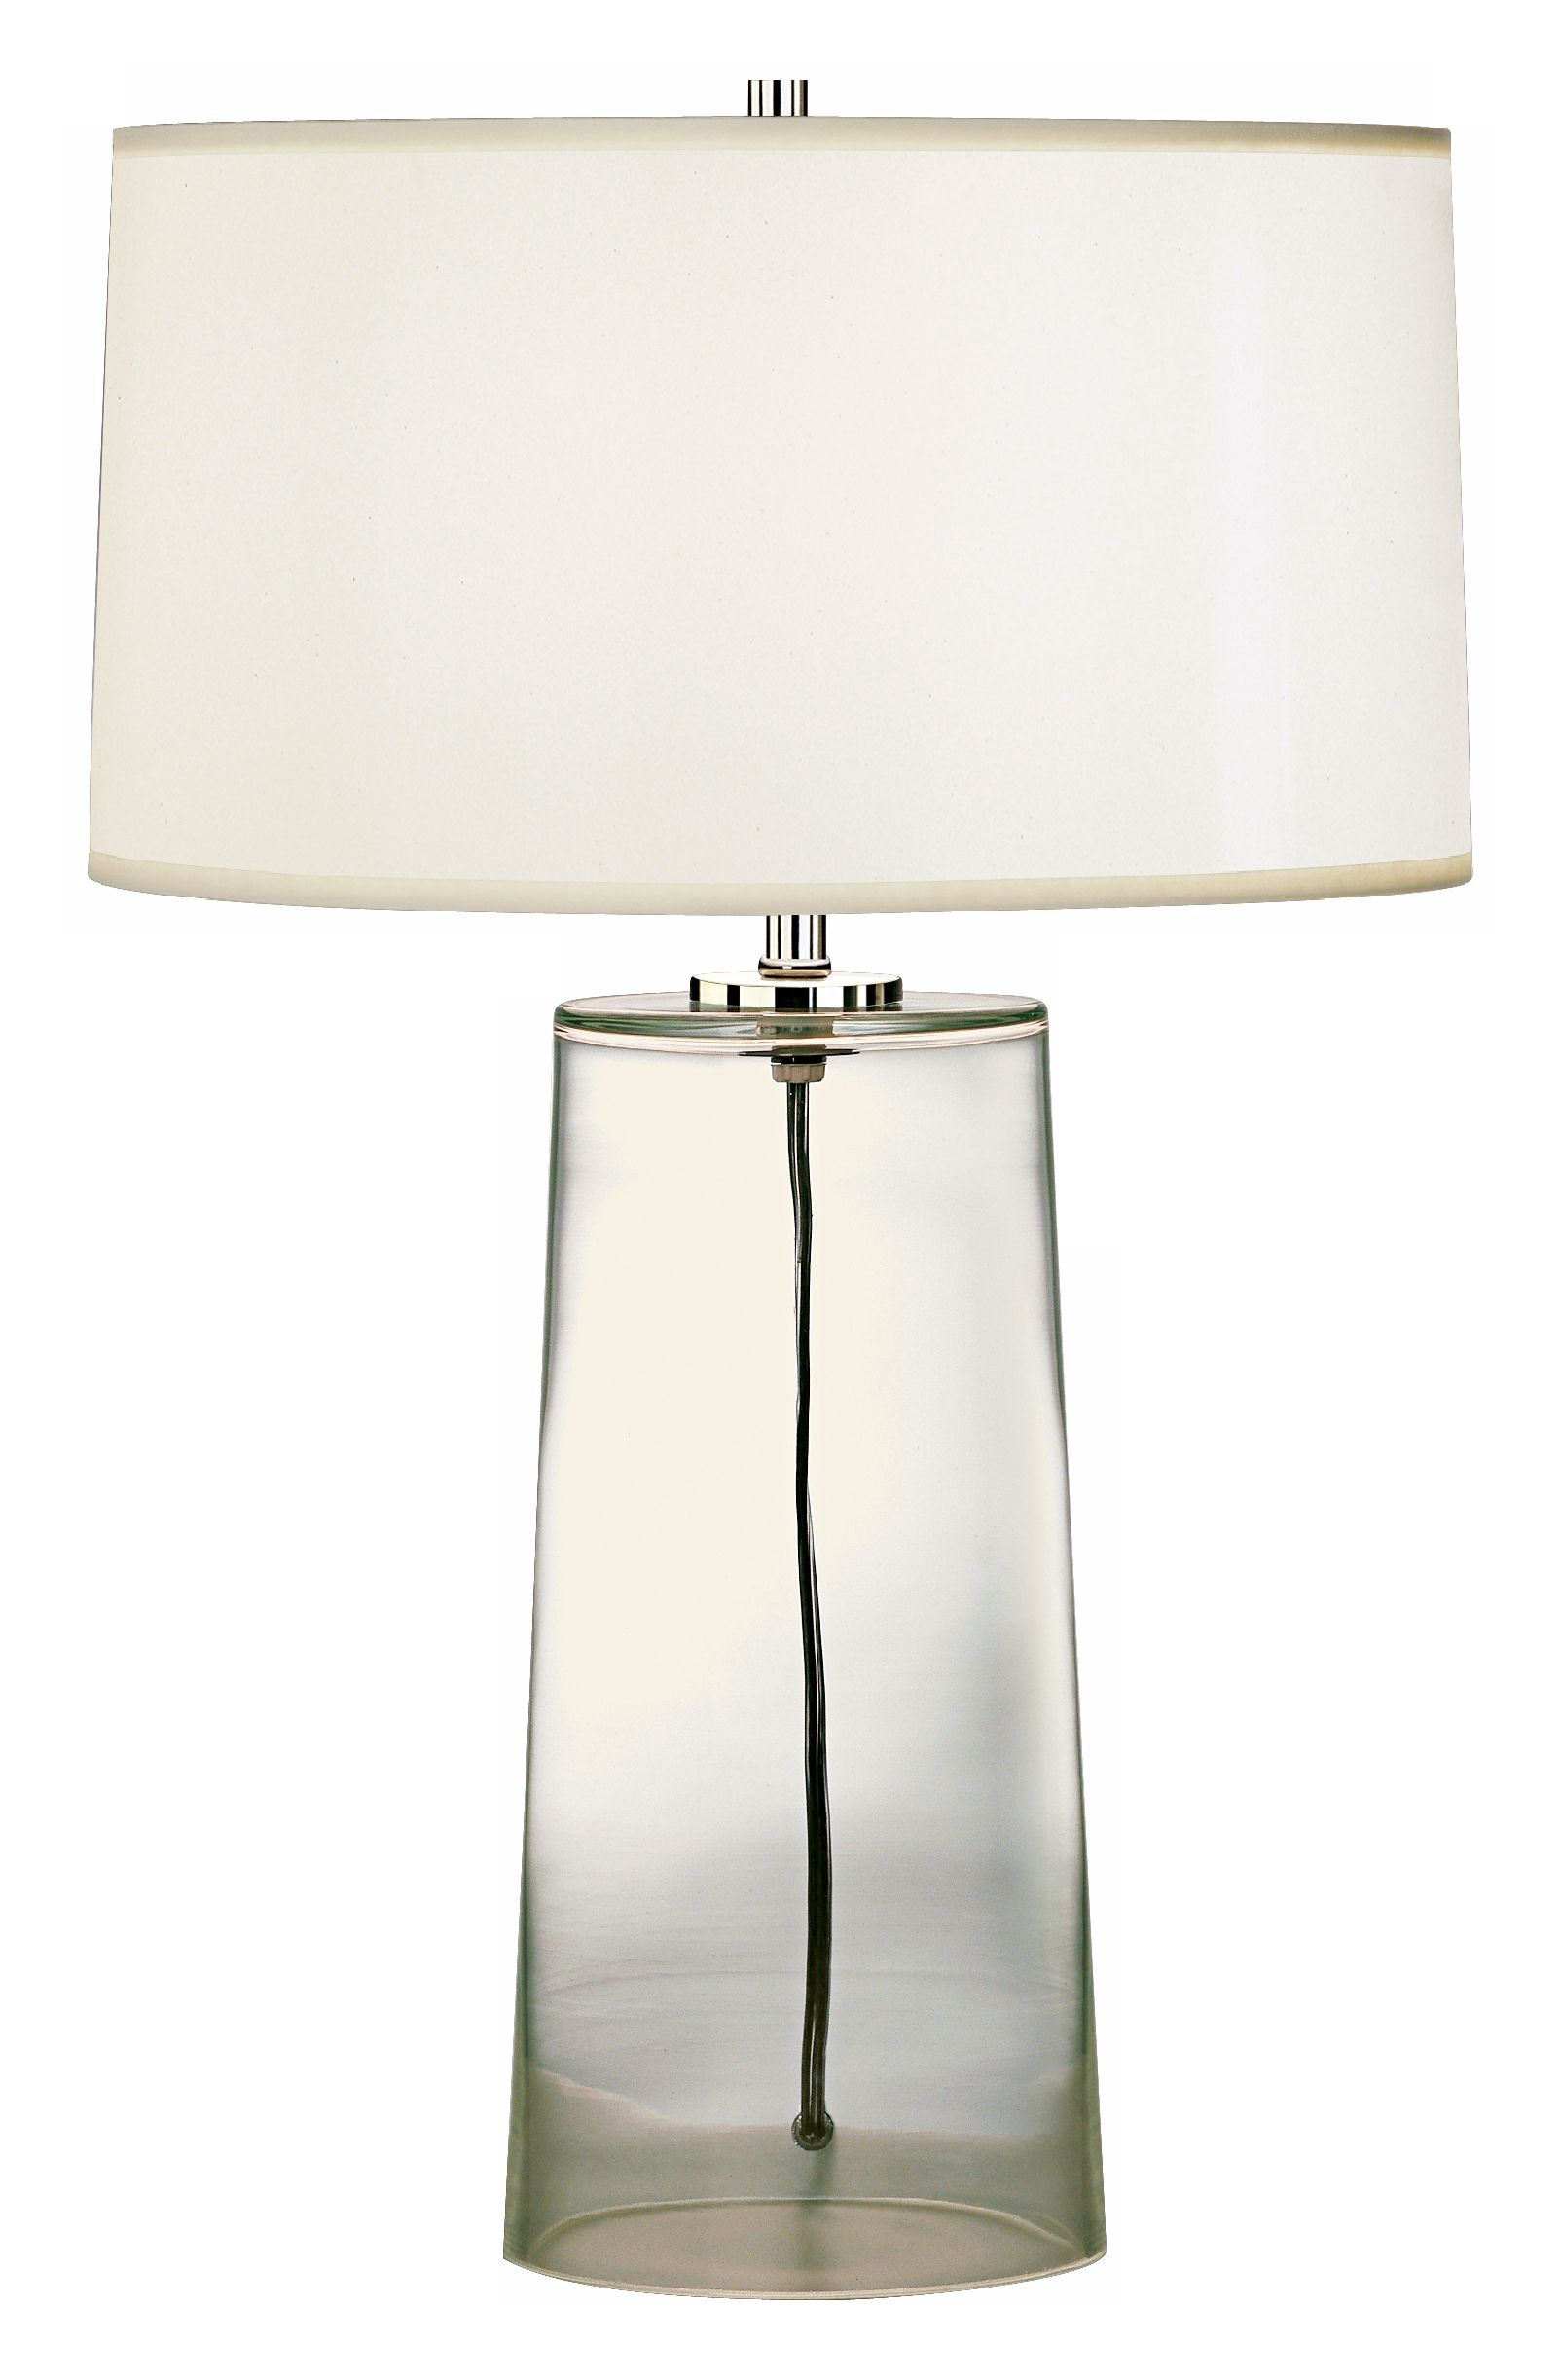 Robert Abbey Clear Glass Base with White Shade Table Lamp H6943